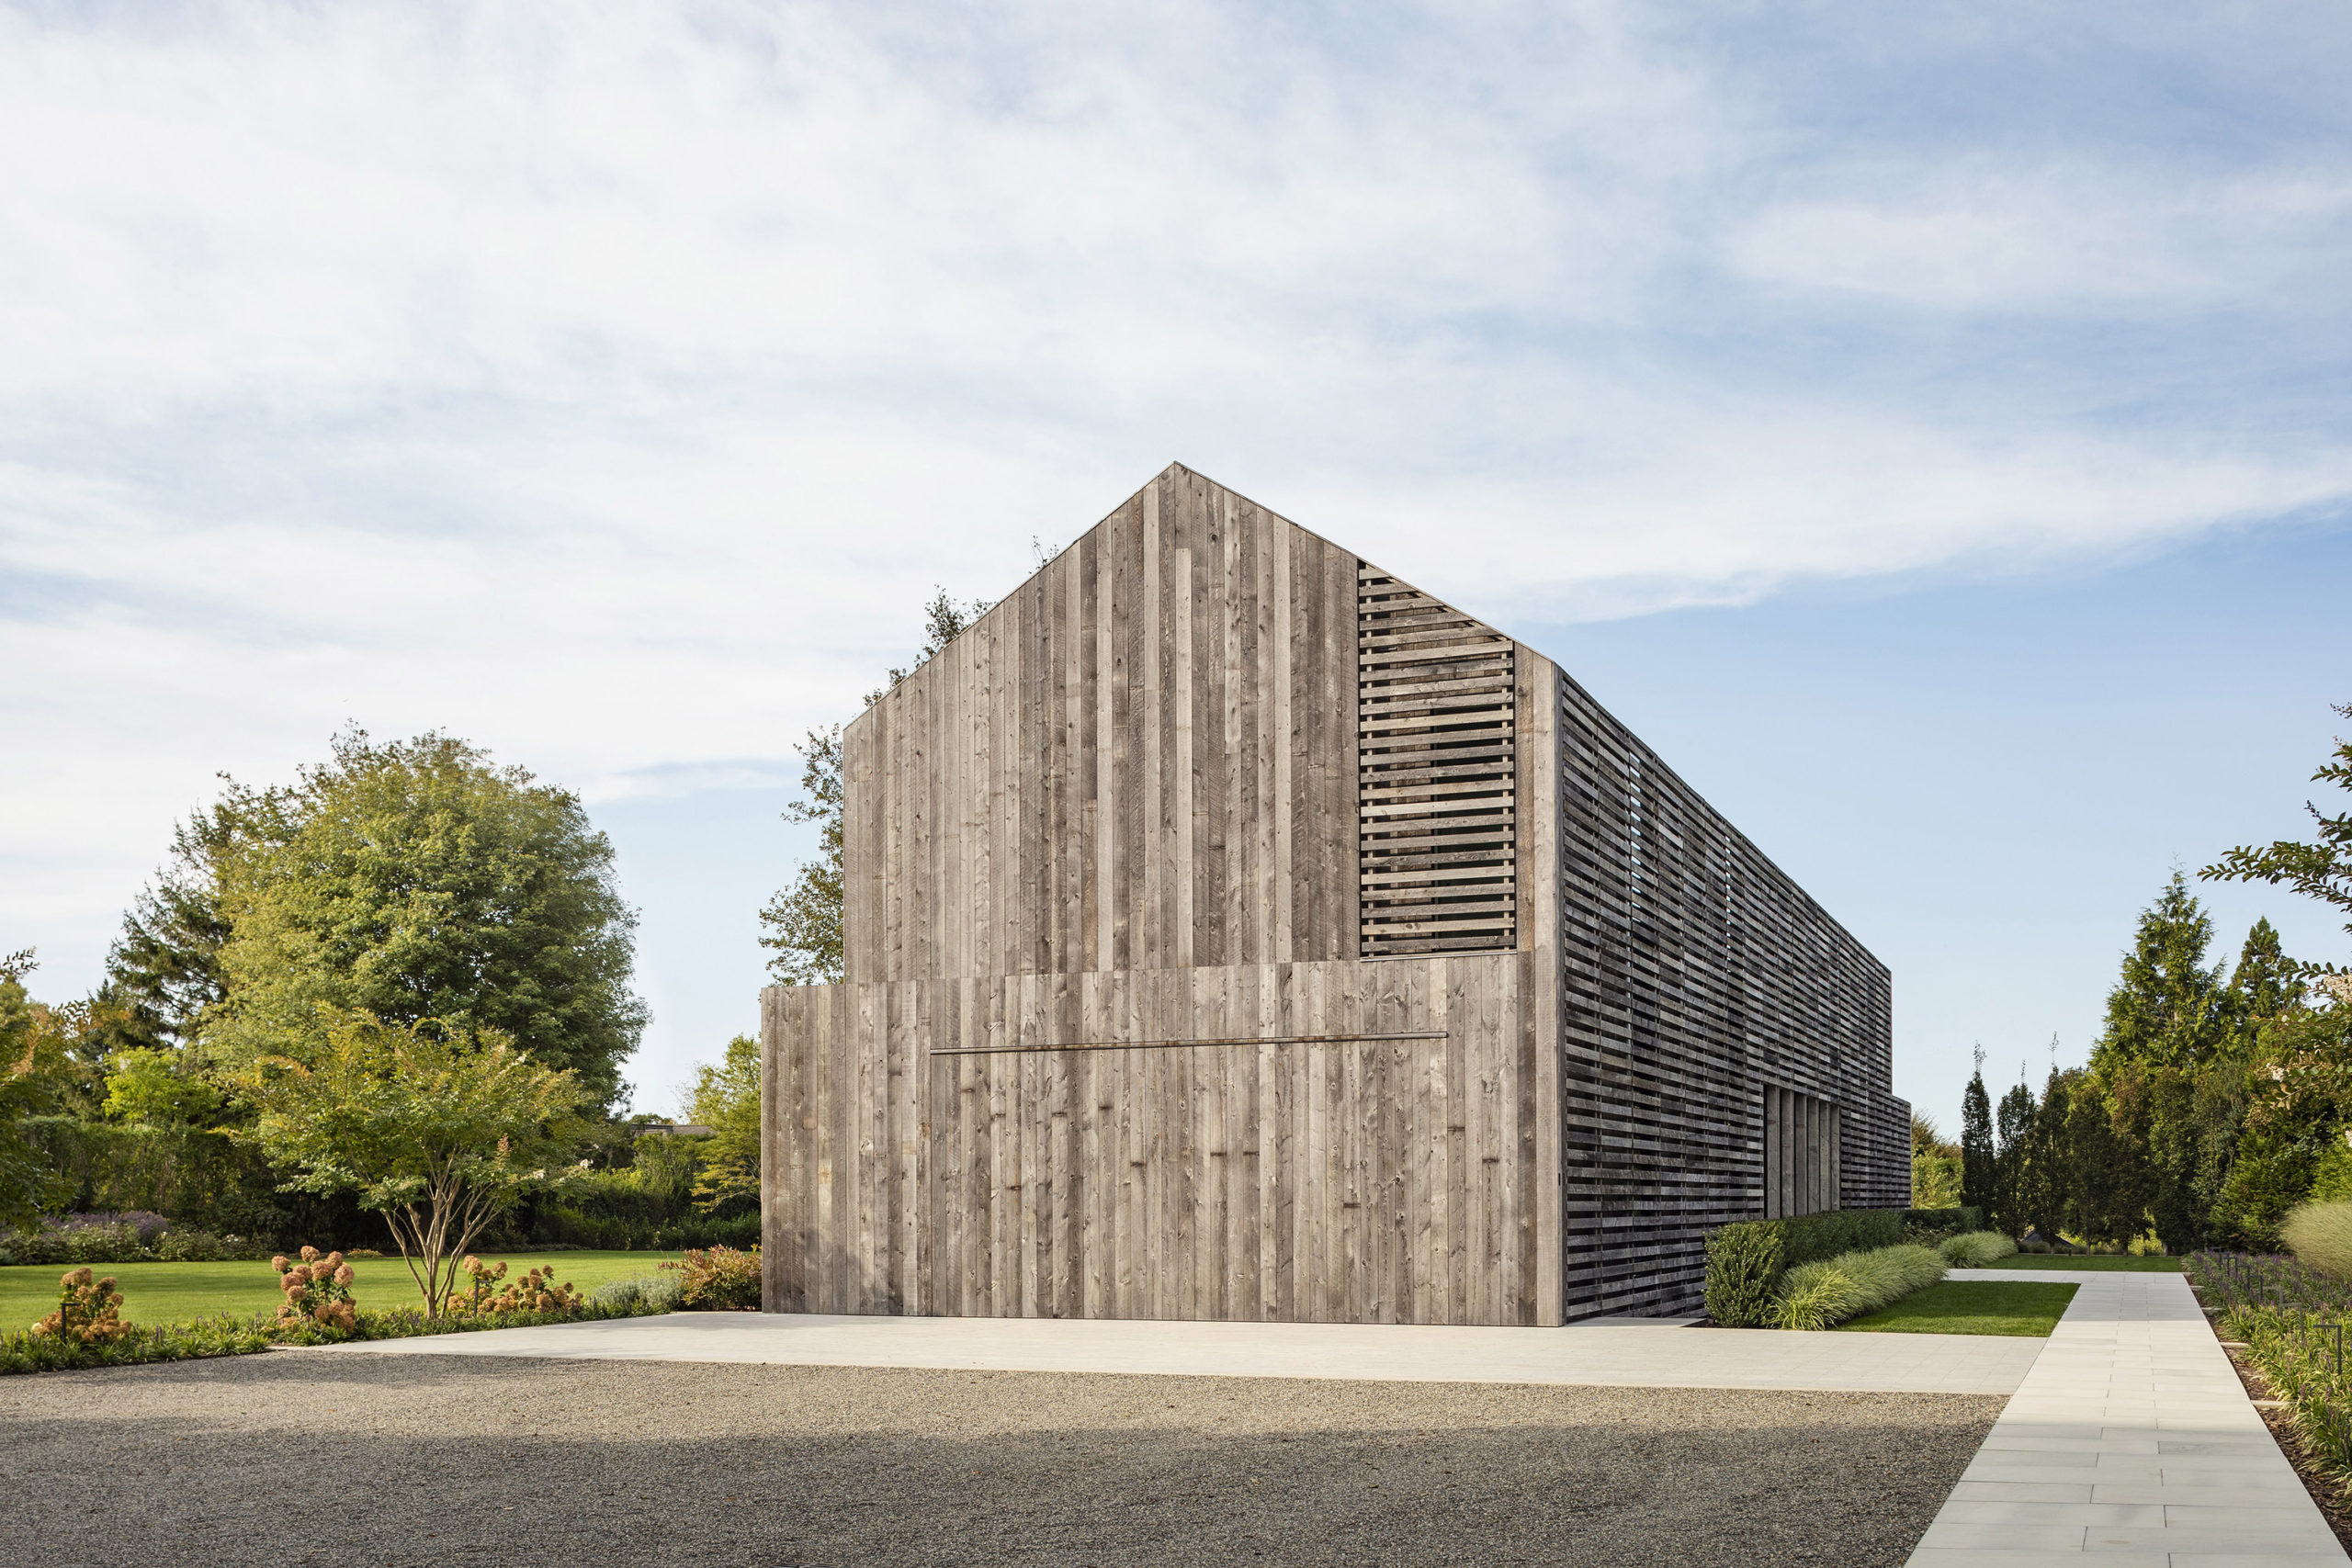 Lathhouse by Birdseye Architecture in Richmond Vermont earned an Honor Award from AIA Peconic.